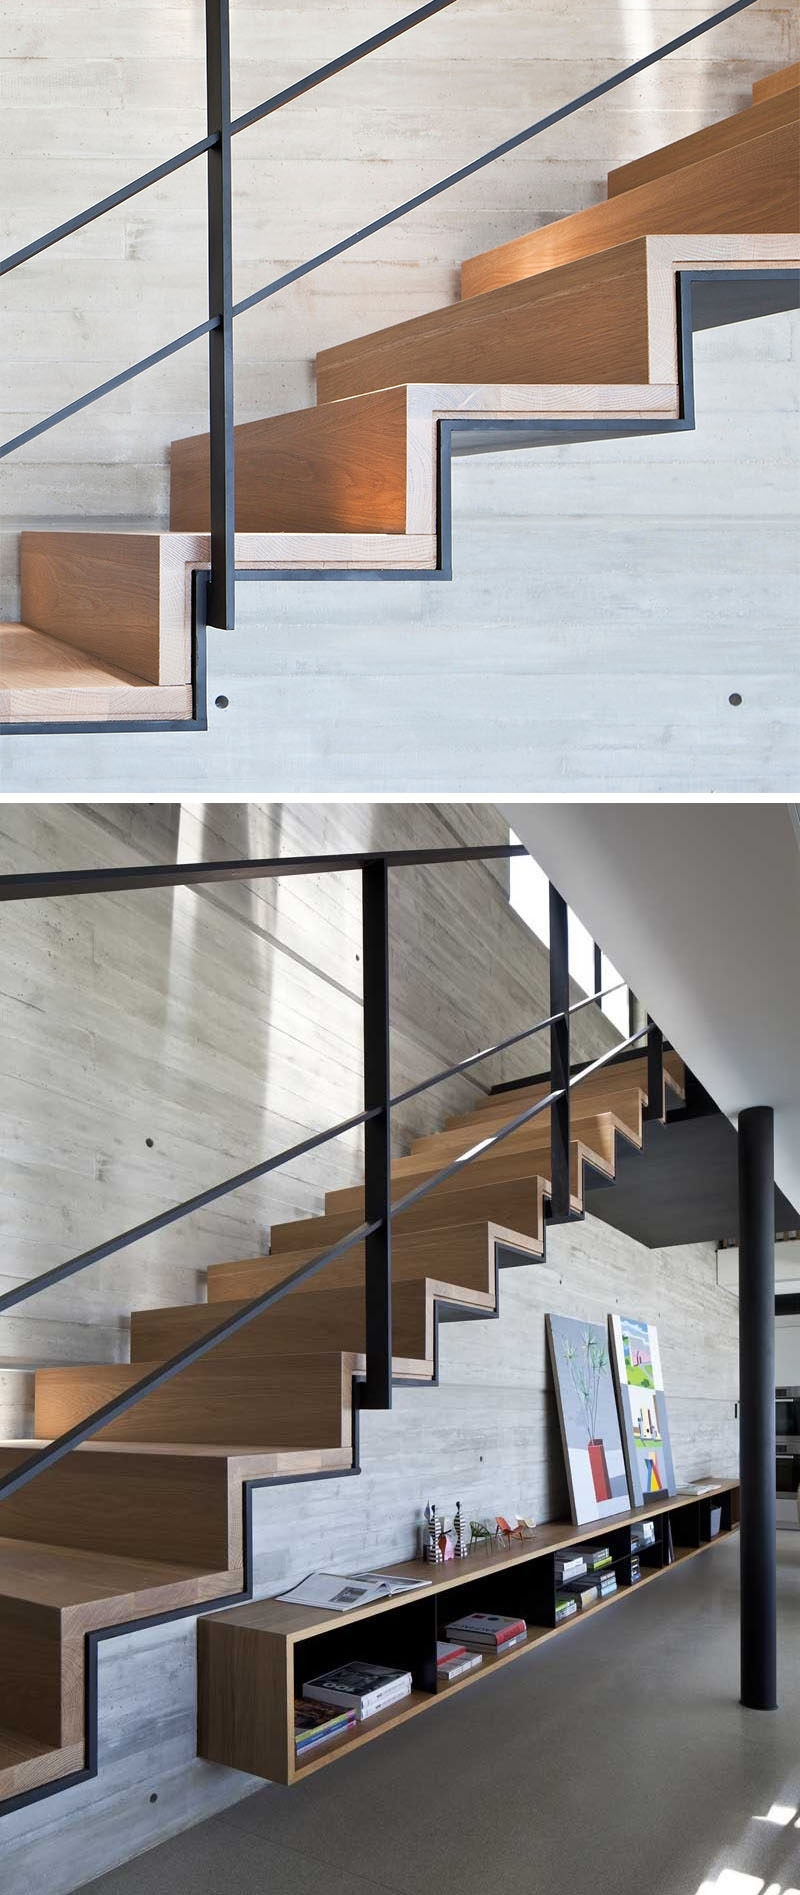 18 Examples Of Stair Details To Inspire You | Stairs Covered In Wood | Round | Interior | Metal | Random | Luxury